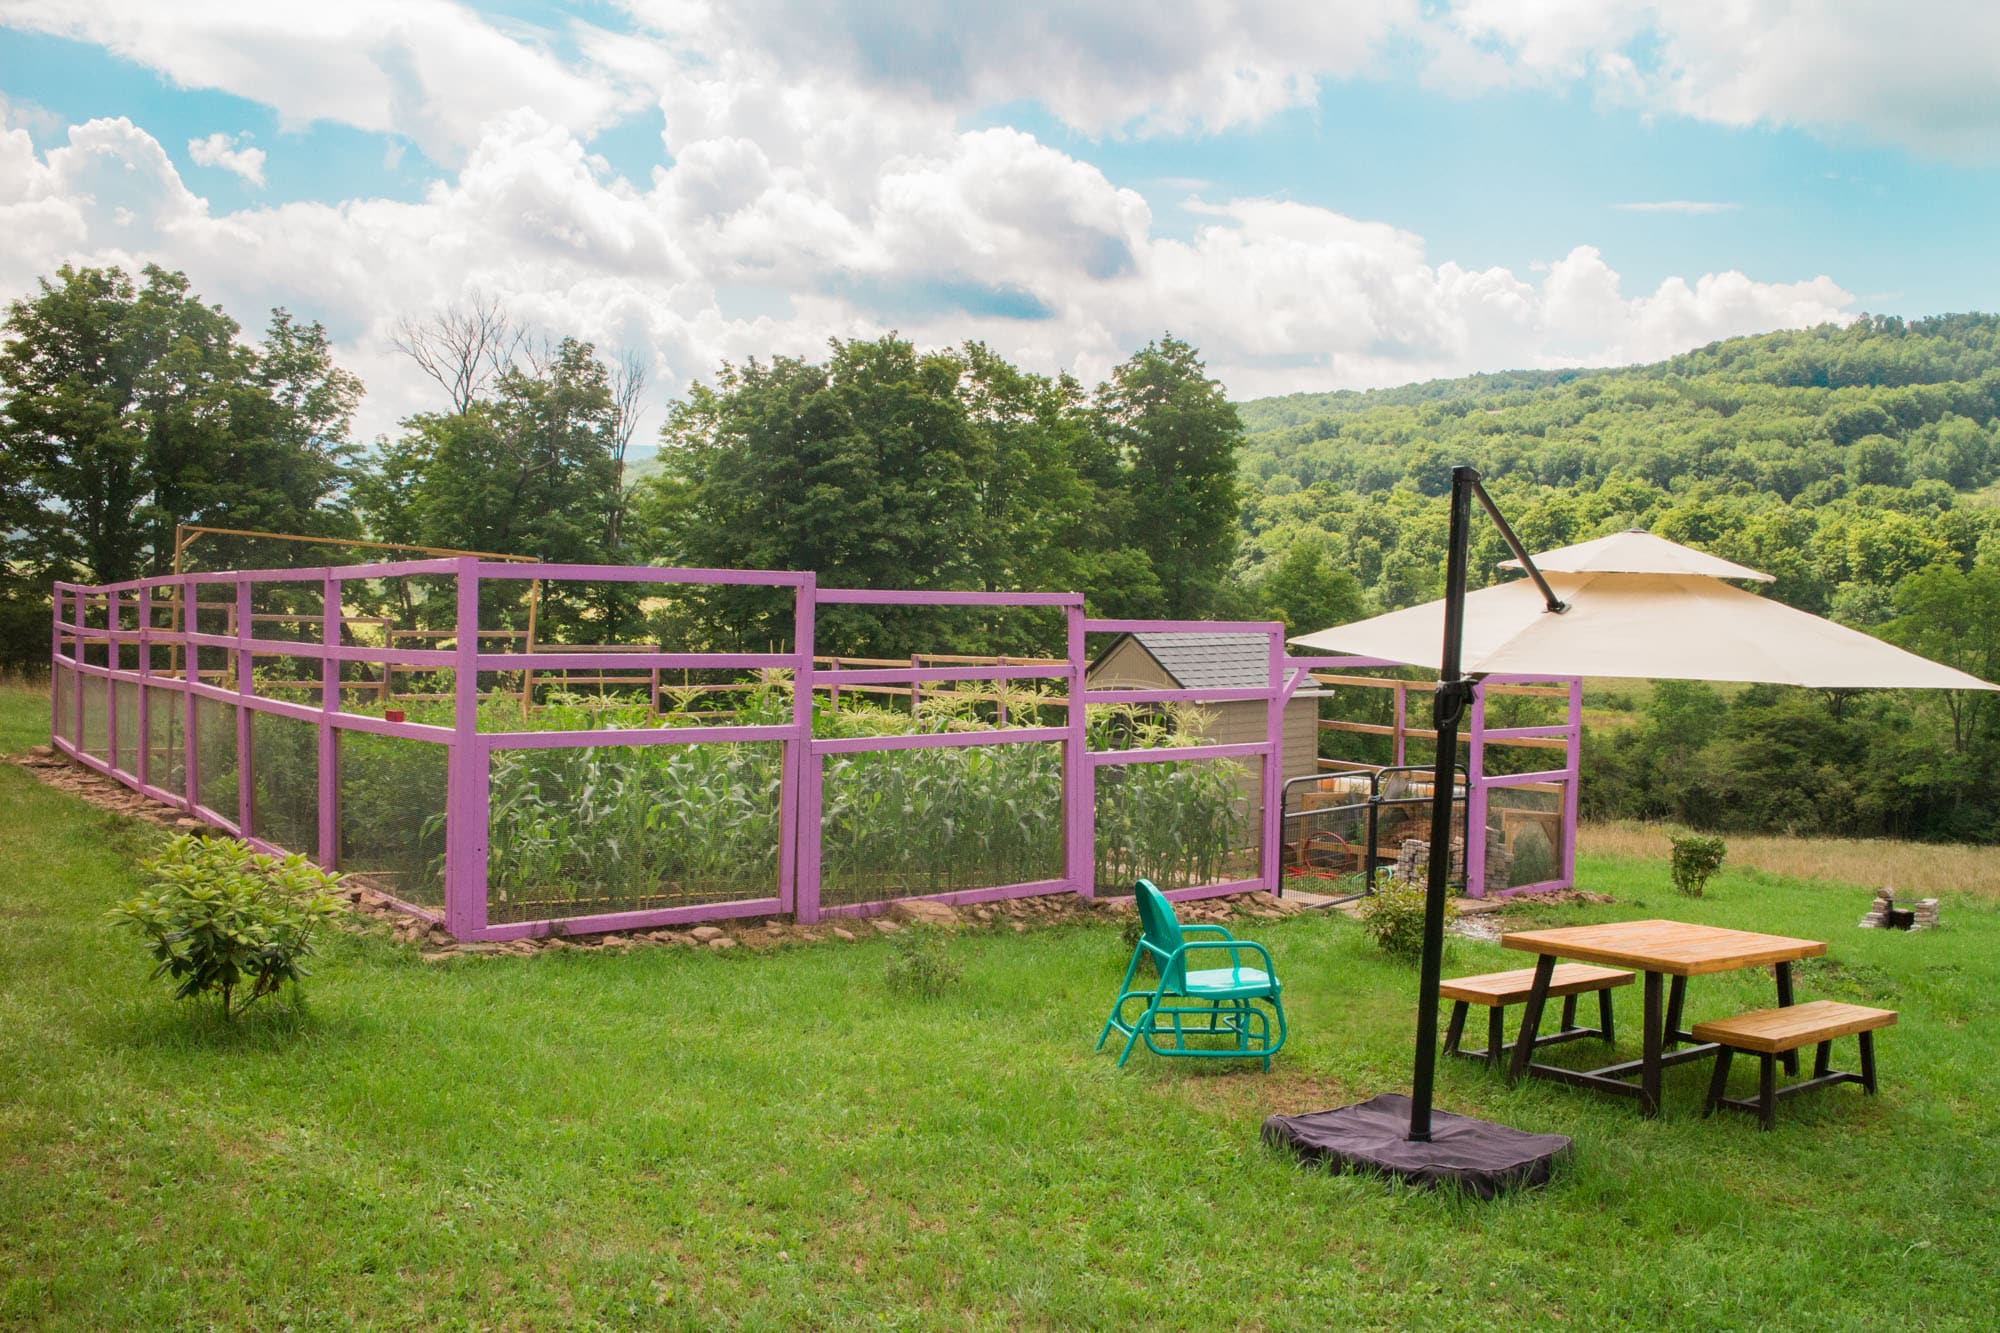 Brooklyn Farm Girl's Colorful Vegetable Garden in Upstate New York. Purple Pink Garden / Garden Inspiration!